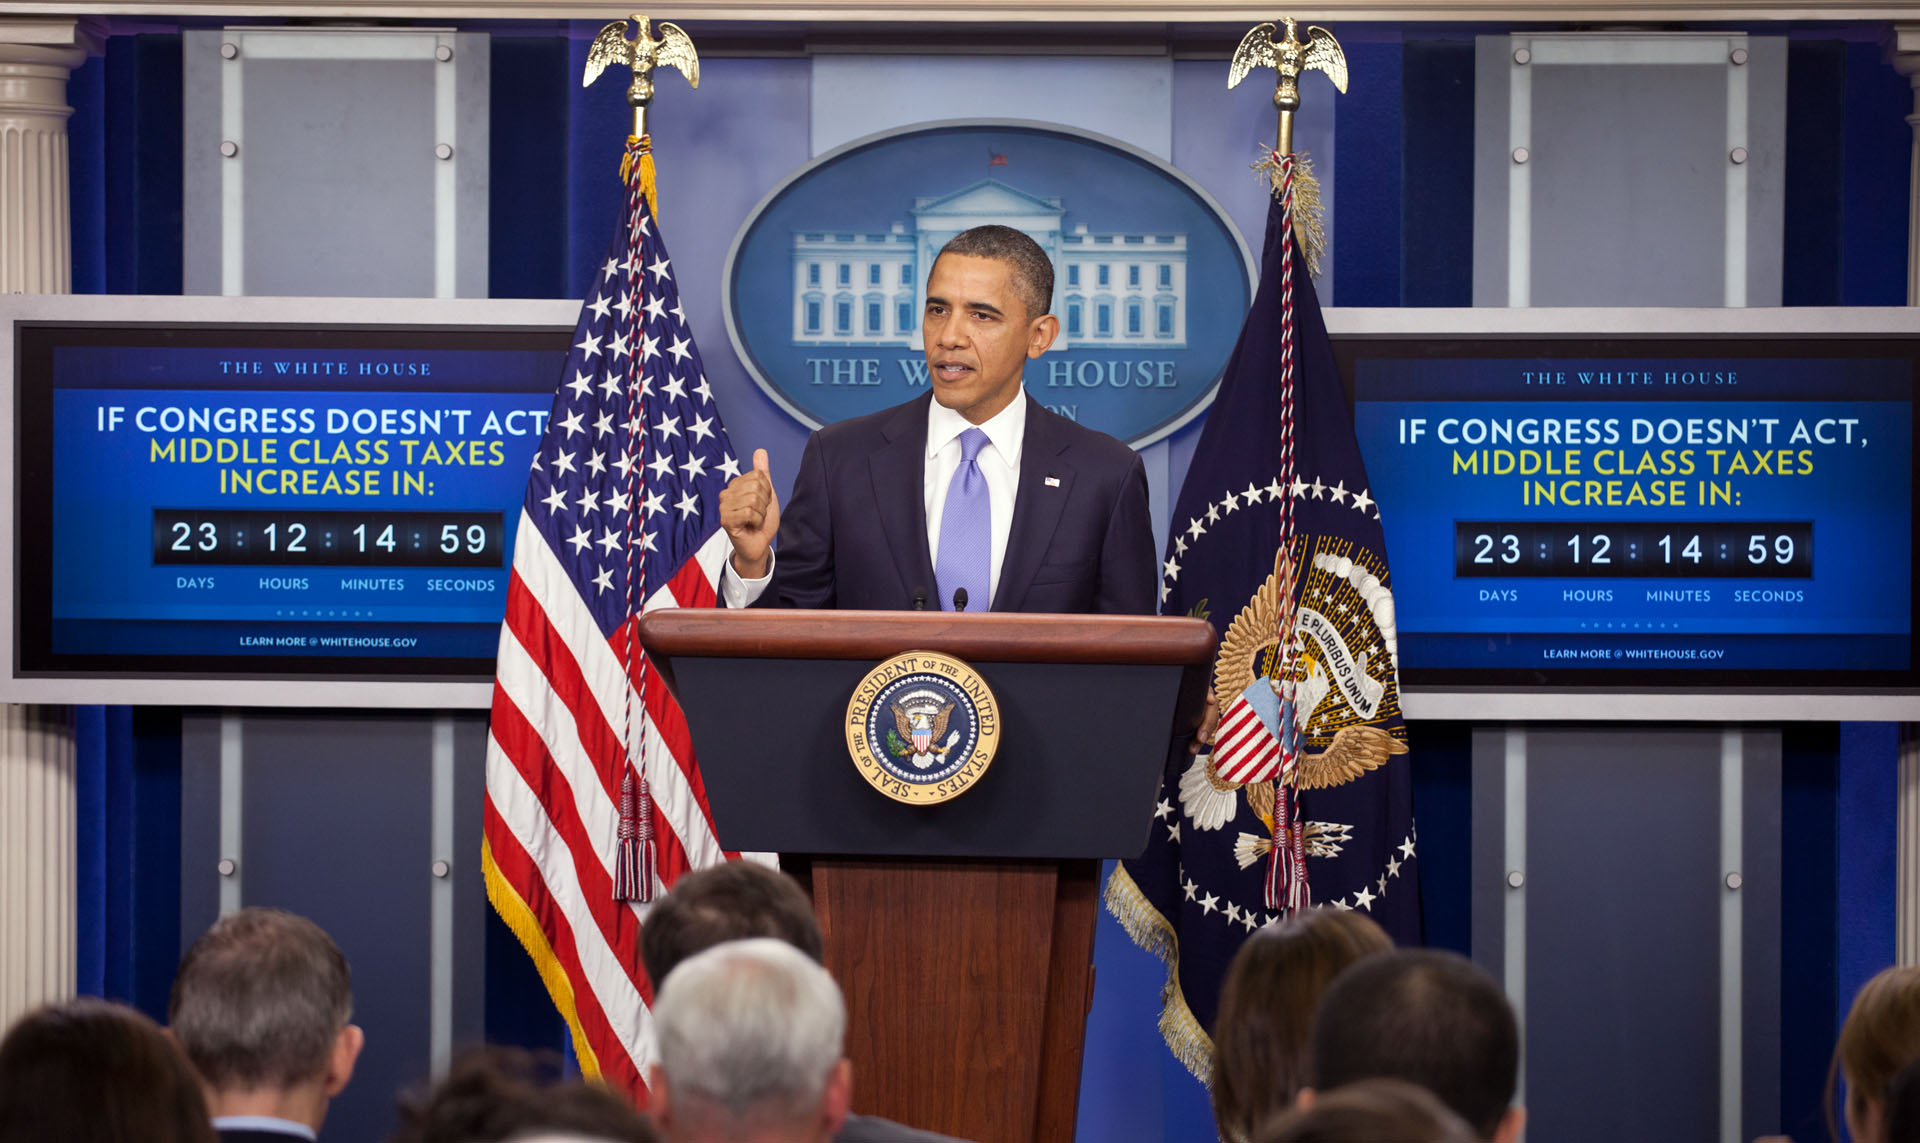 President Obama stands in front of the middle class tax cut countdown clock in the Press Room in December 2011.